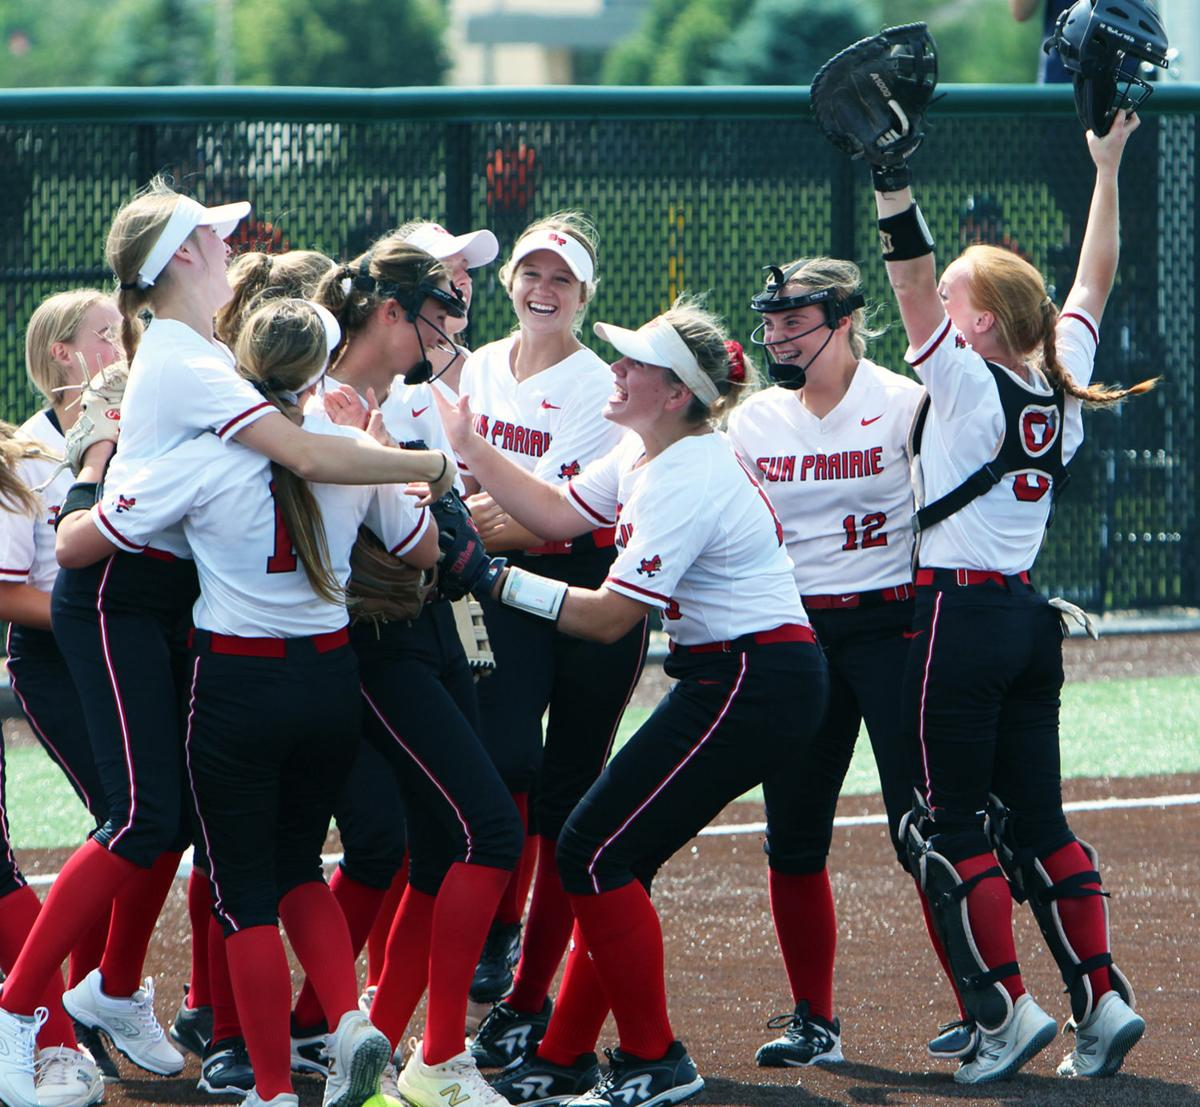 WIAA state softball photo: The celebration begins as Sun Prairie makes another state final